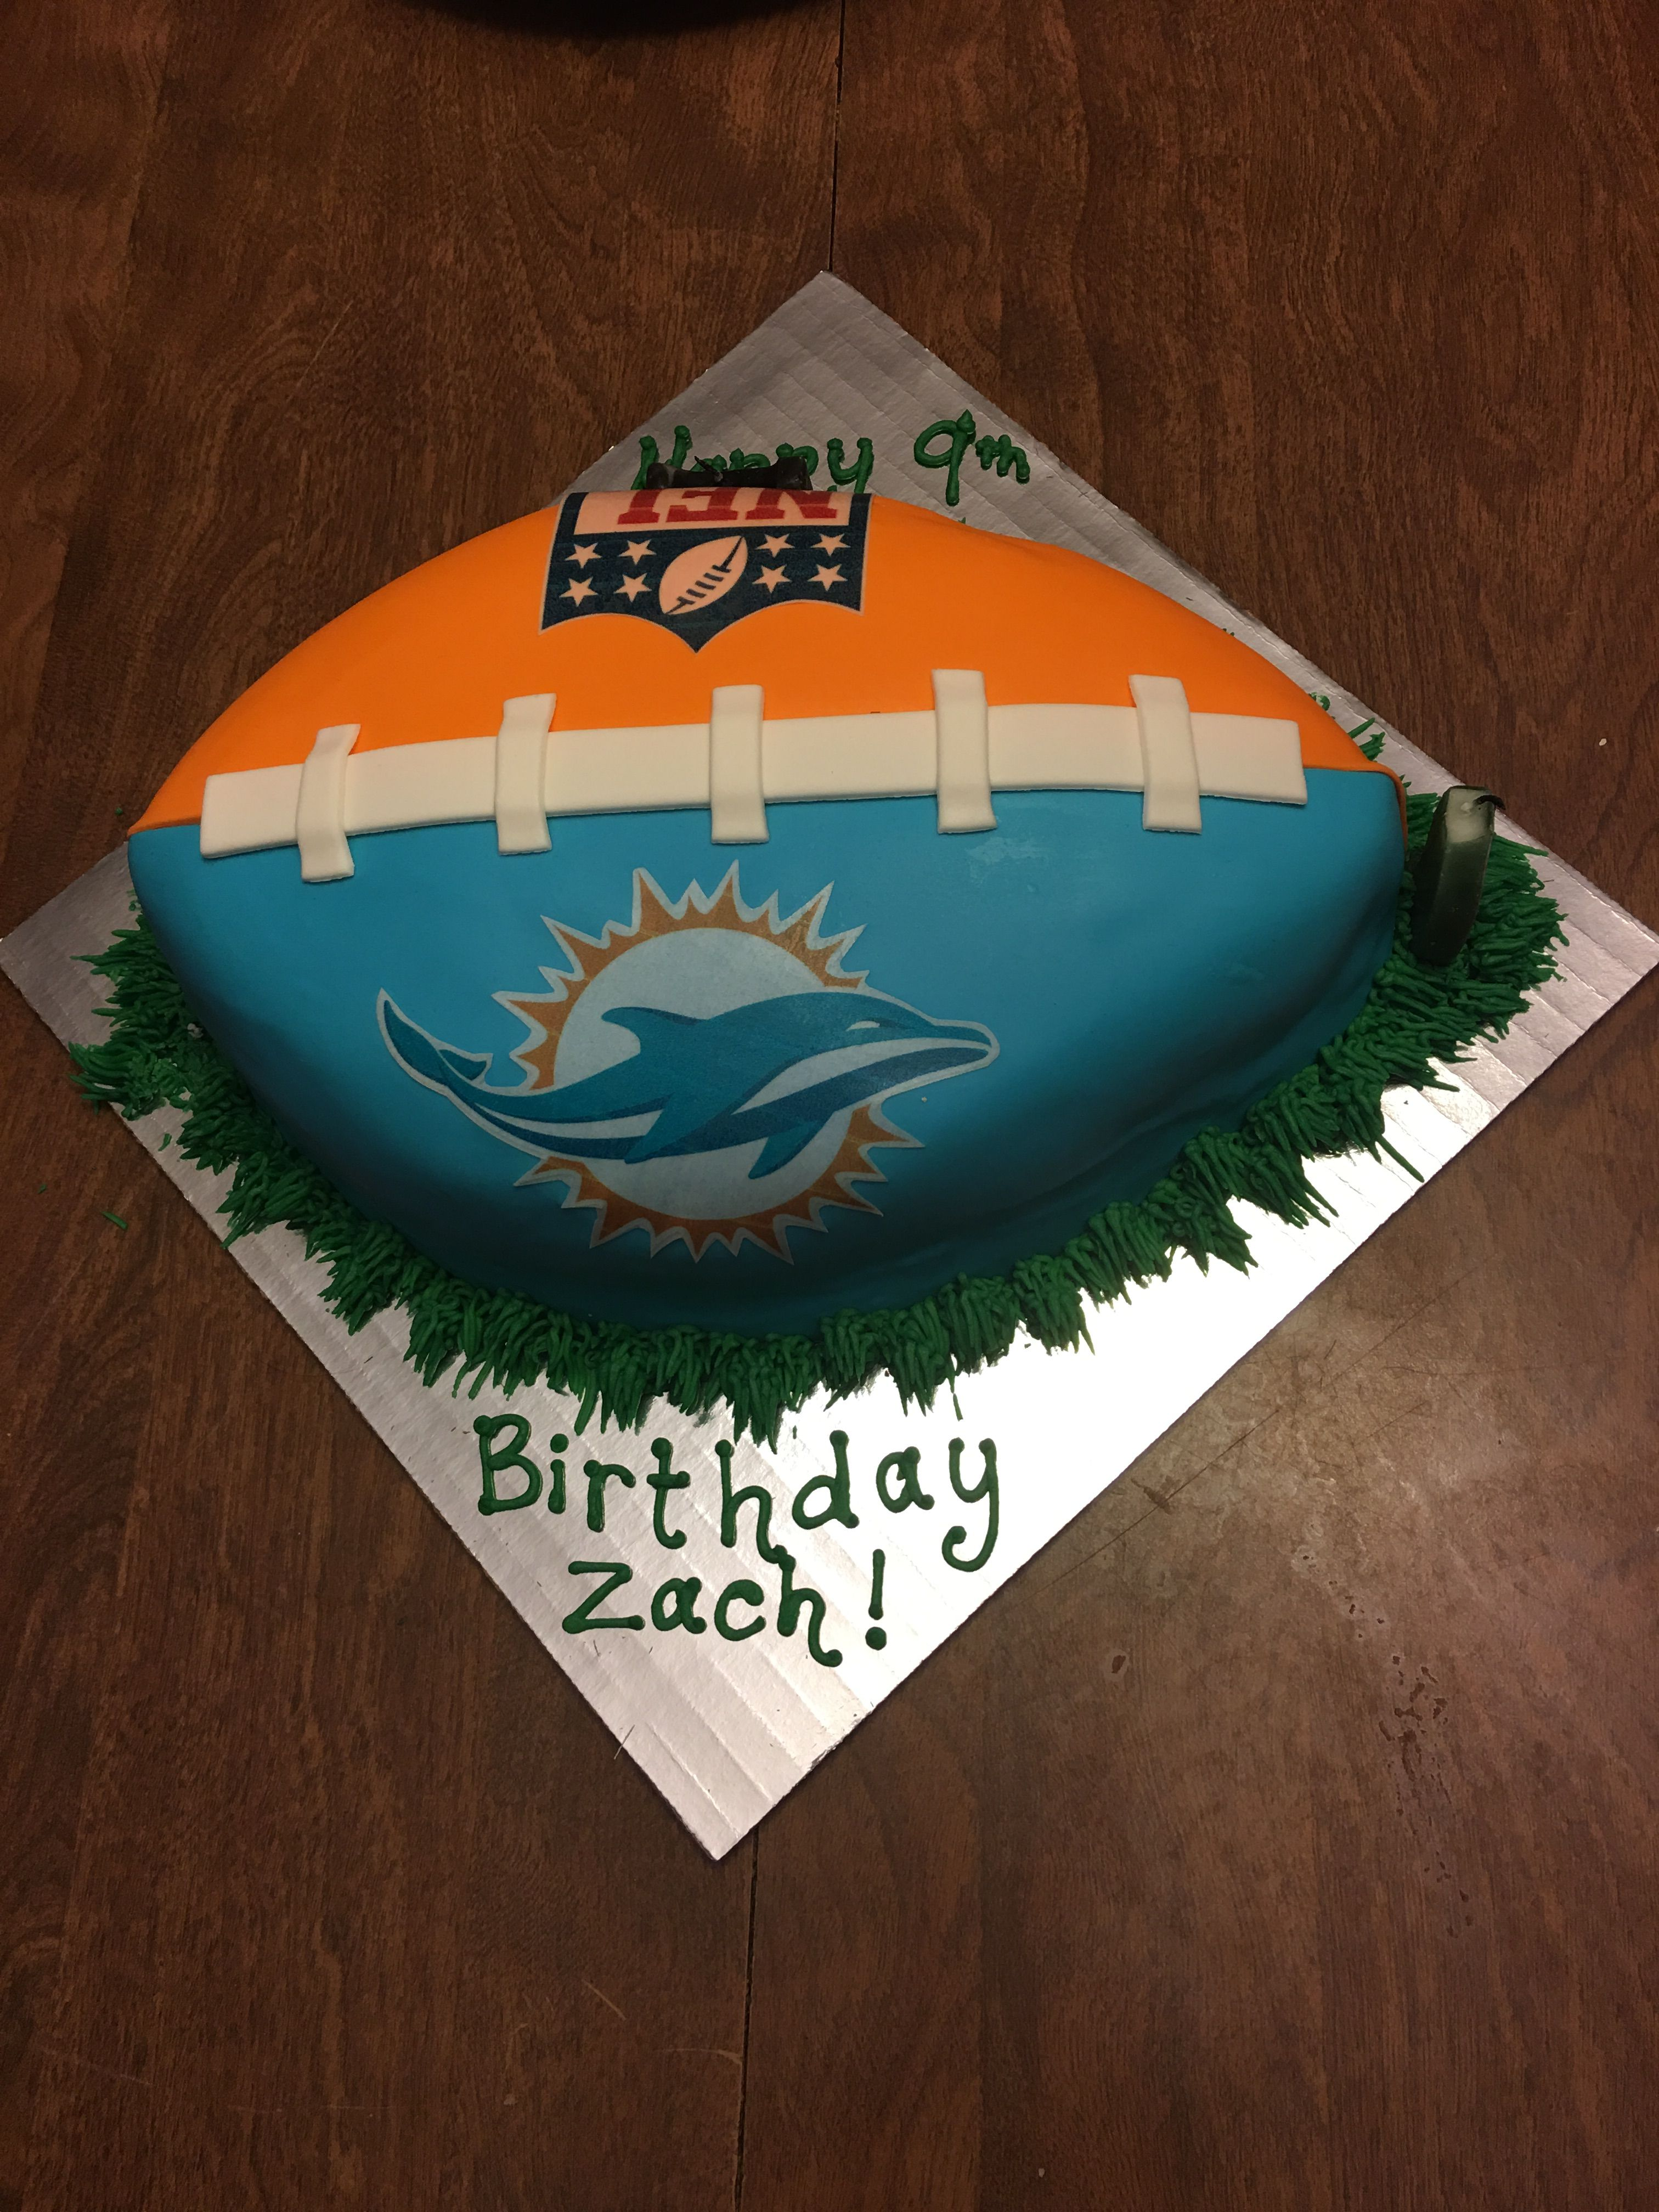 Miami Dolphins Cake For My Son S 9th Birthday Bruce Lebitz With Images Miami Dolphins Cake Miami Dolphins Dolphin Cakes